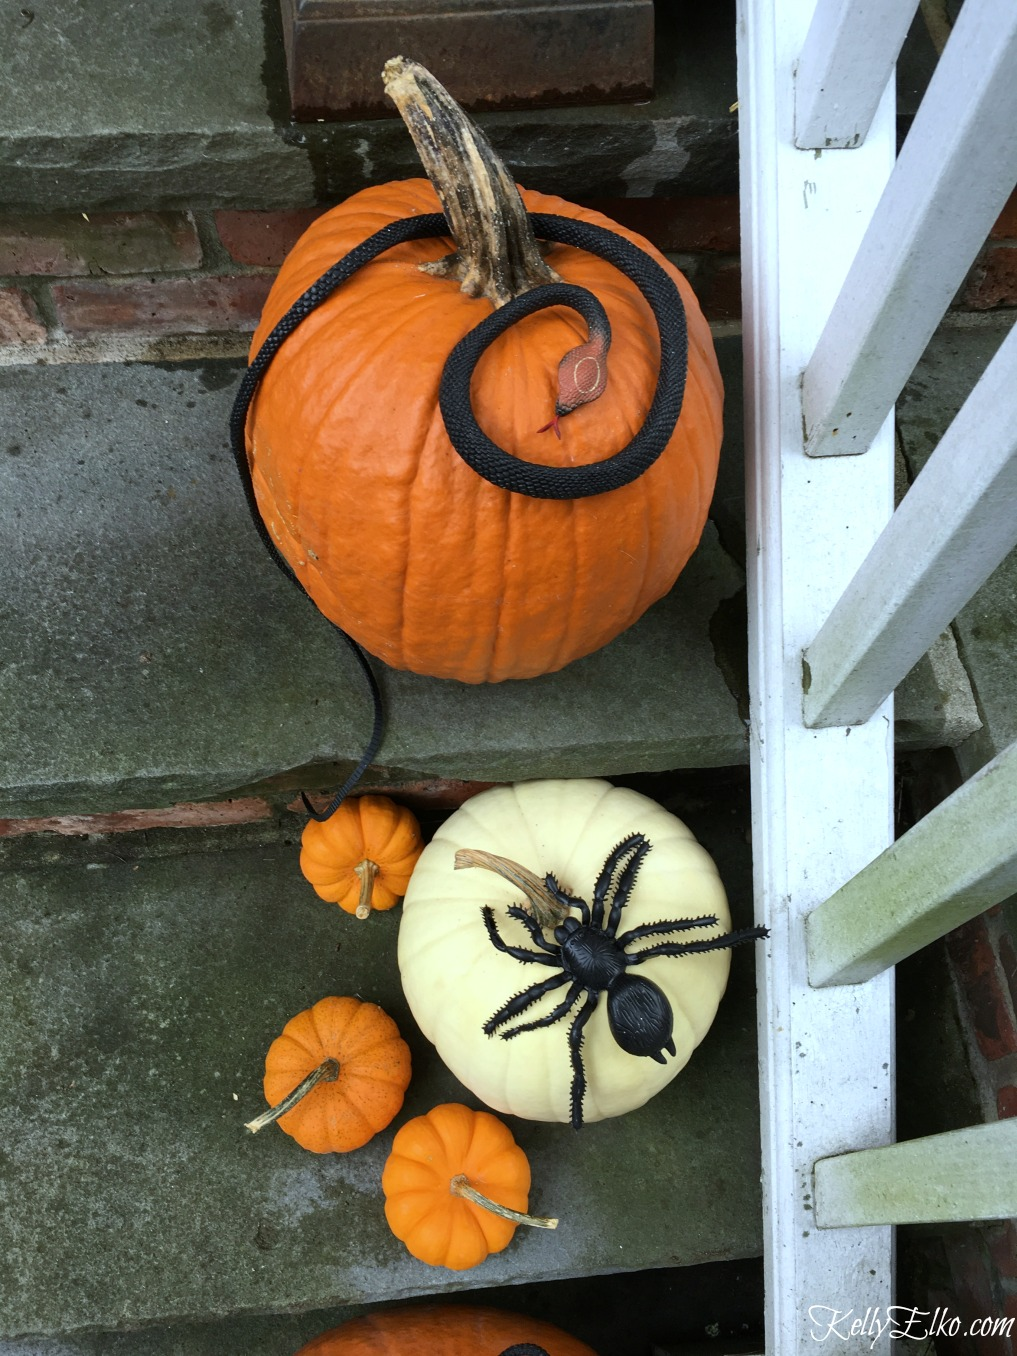 Add plastic snakes and spiders to pumpkins for Halloween kellyelko.com